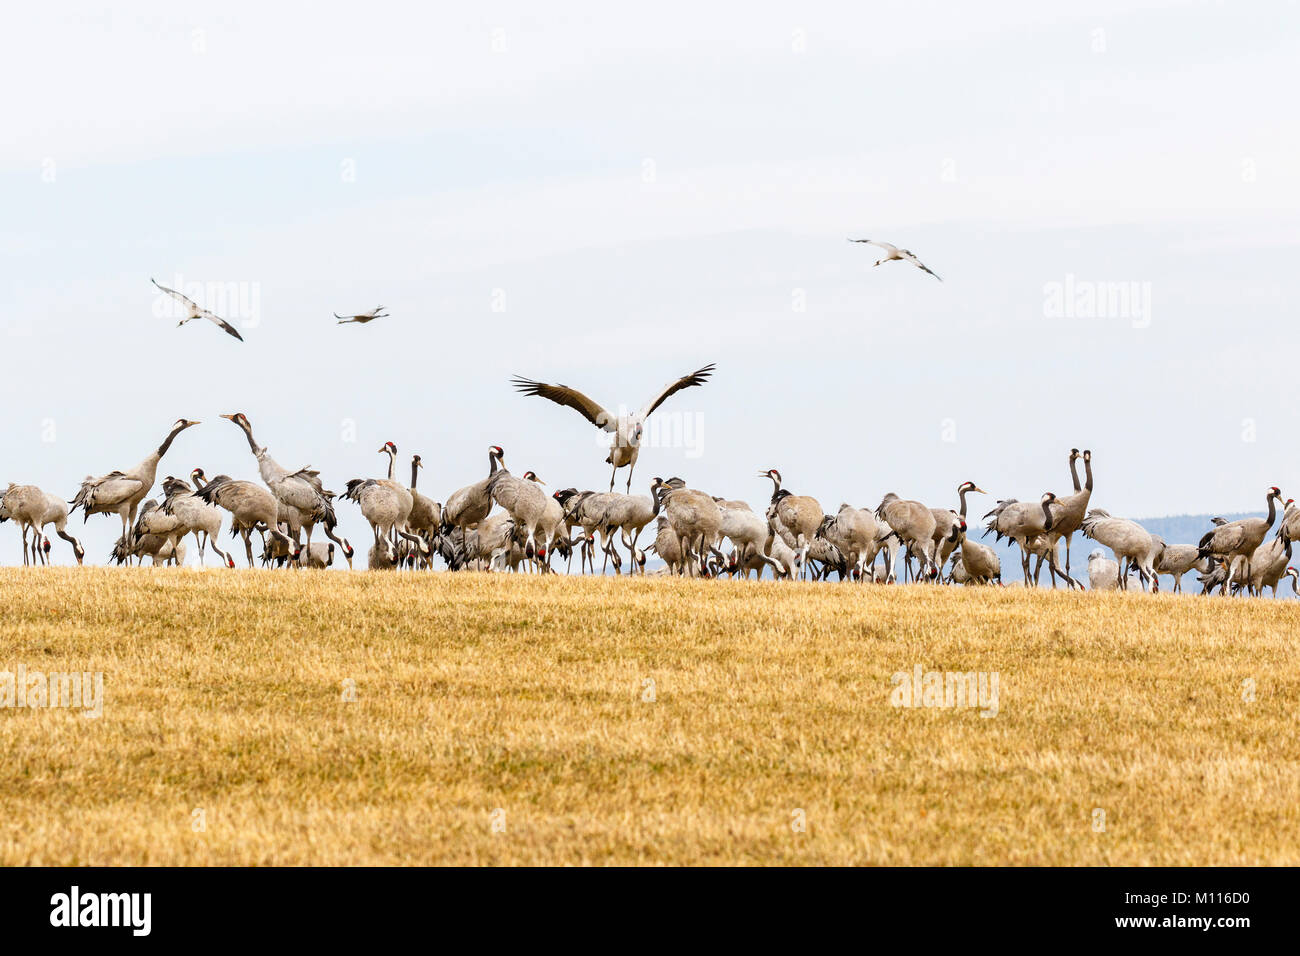 Crane landing in a flock at a field Stock Photo